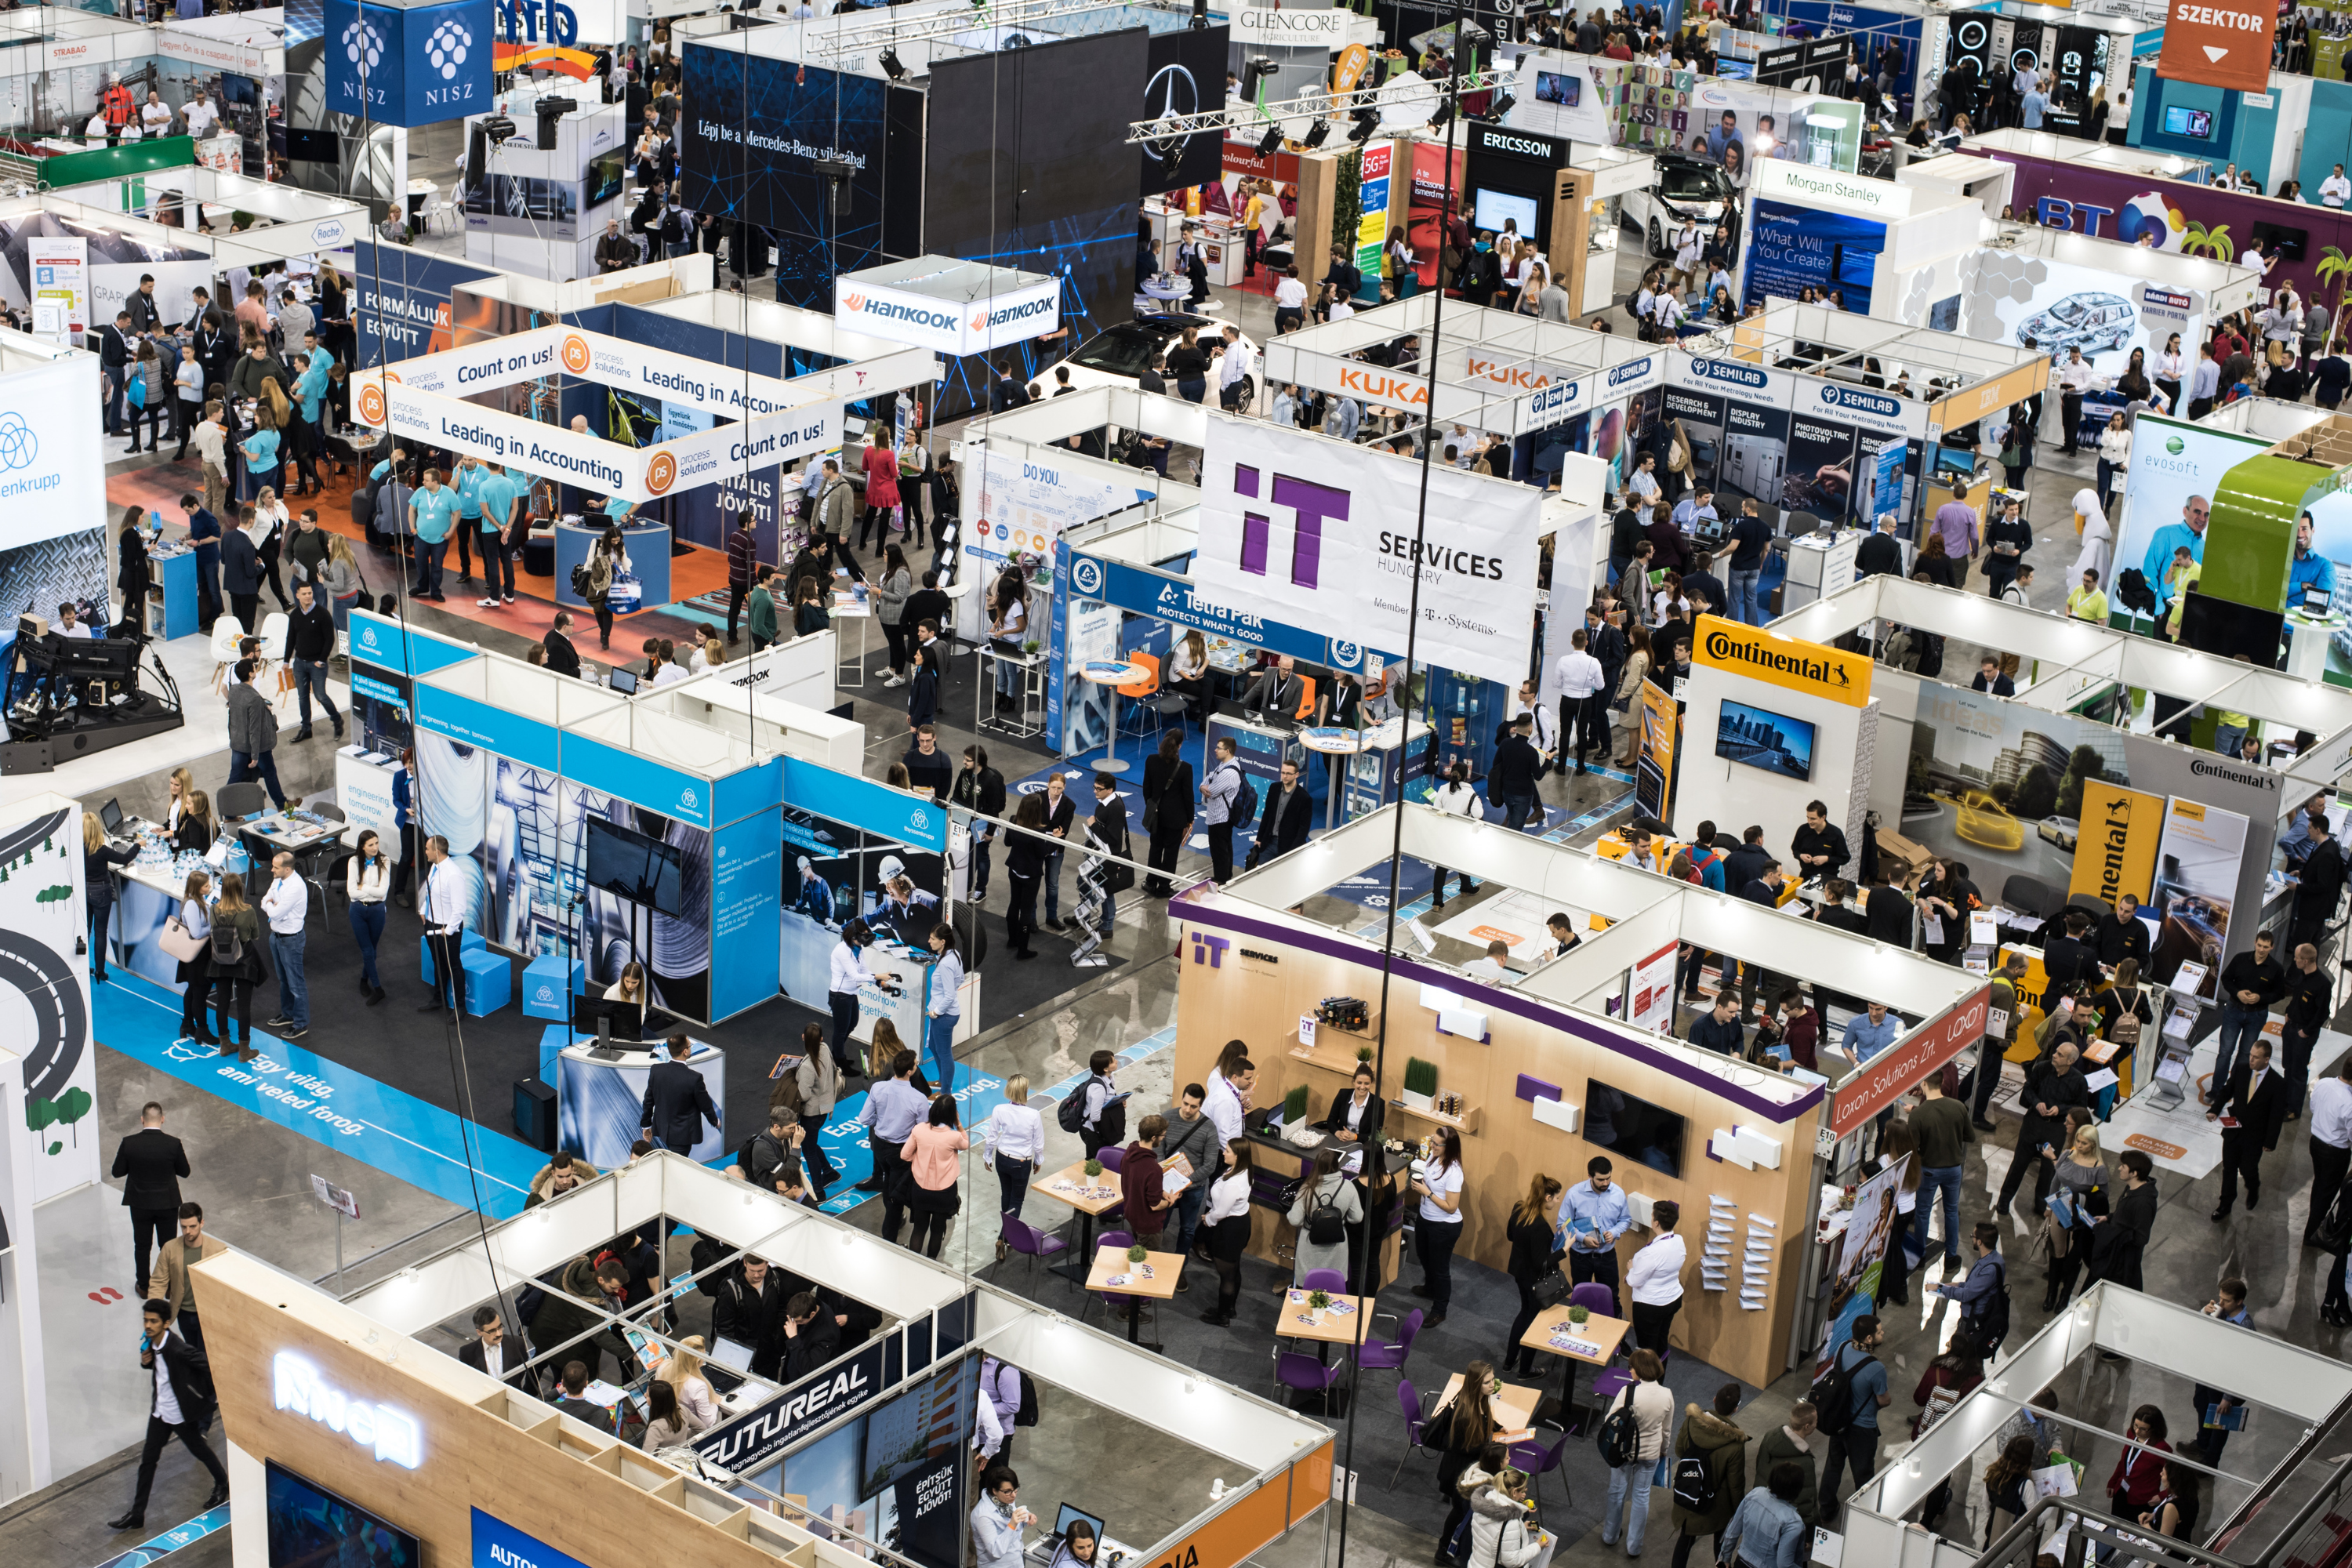 Photo from a high angle of a careers fair